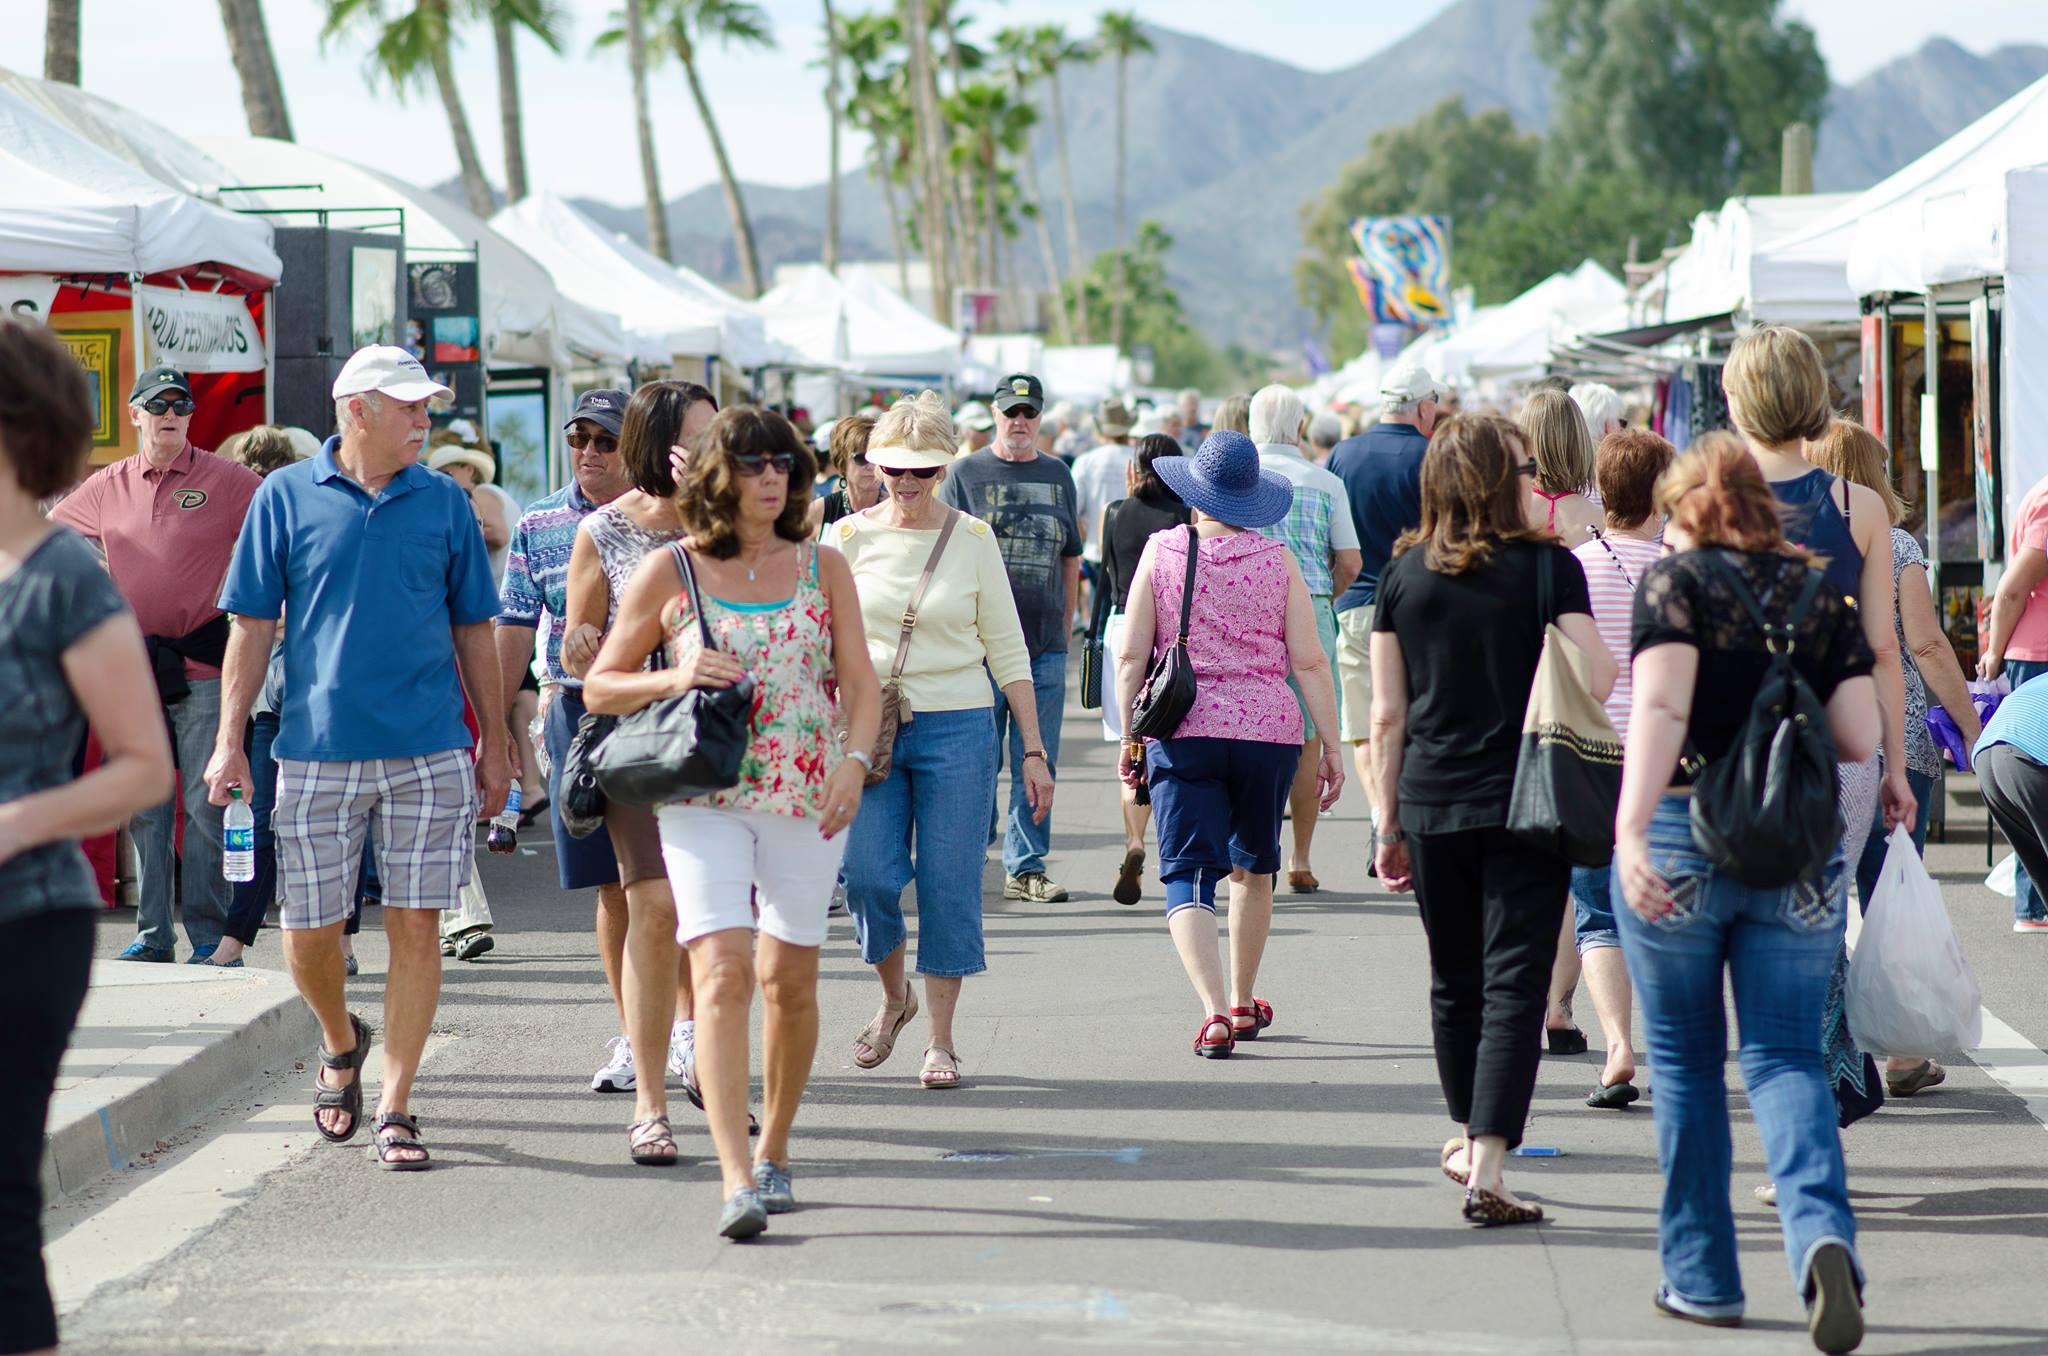 Fountain hills festival of arts and crafts north phoenix for Craft fairs in phoenix az